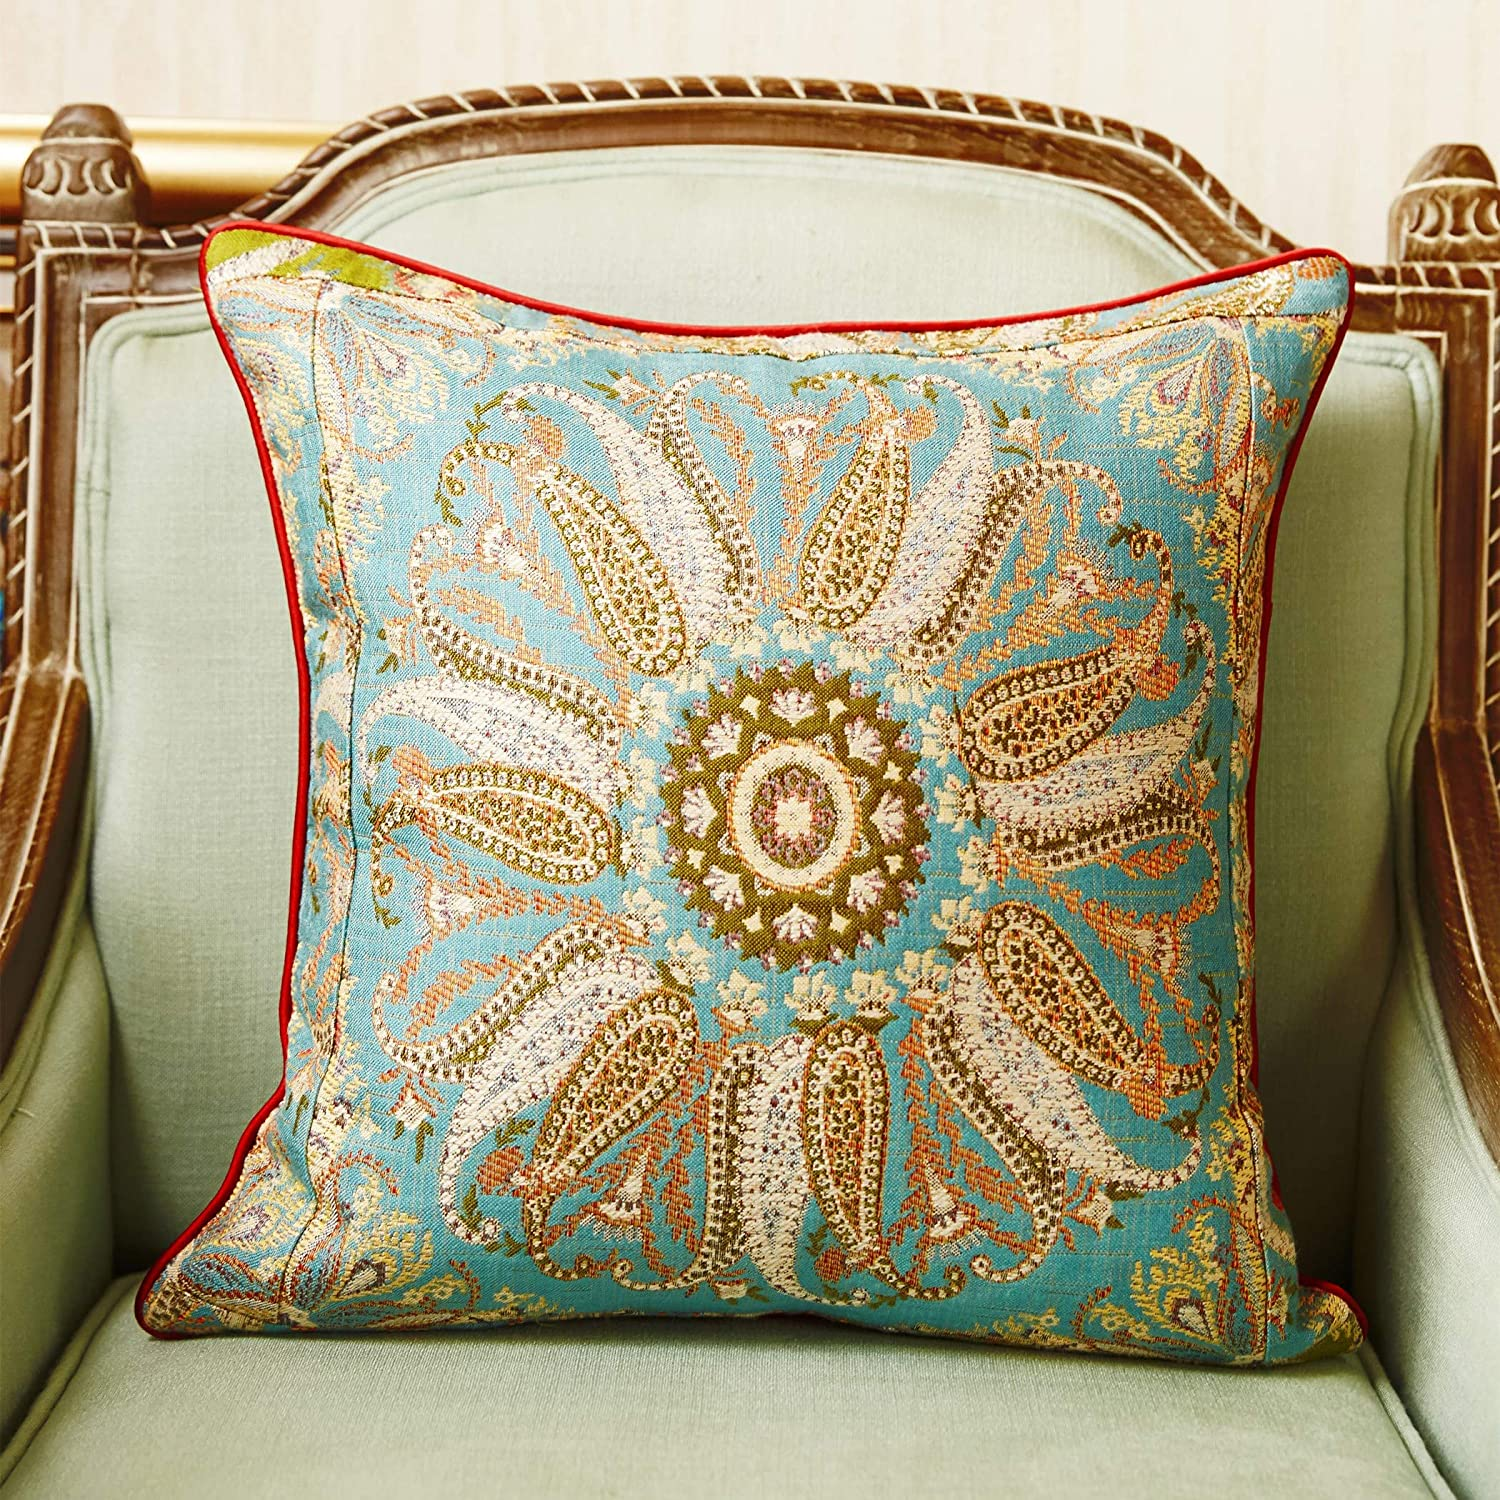 Besalily Bohemian Rose Series Double-Sided Jacquard Throw Pillow Case Pillow Sham Cushion Cover 45x45cm (18x18inch) for Sofa Couch Home Decoration